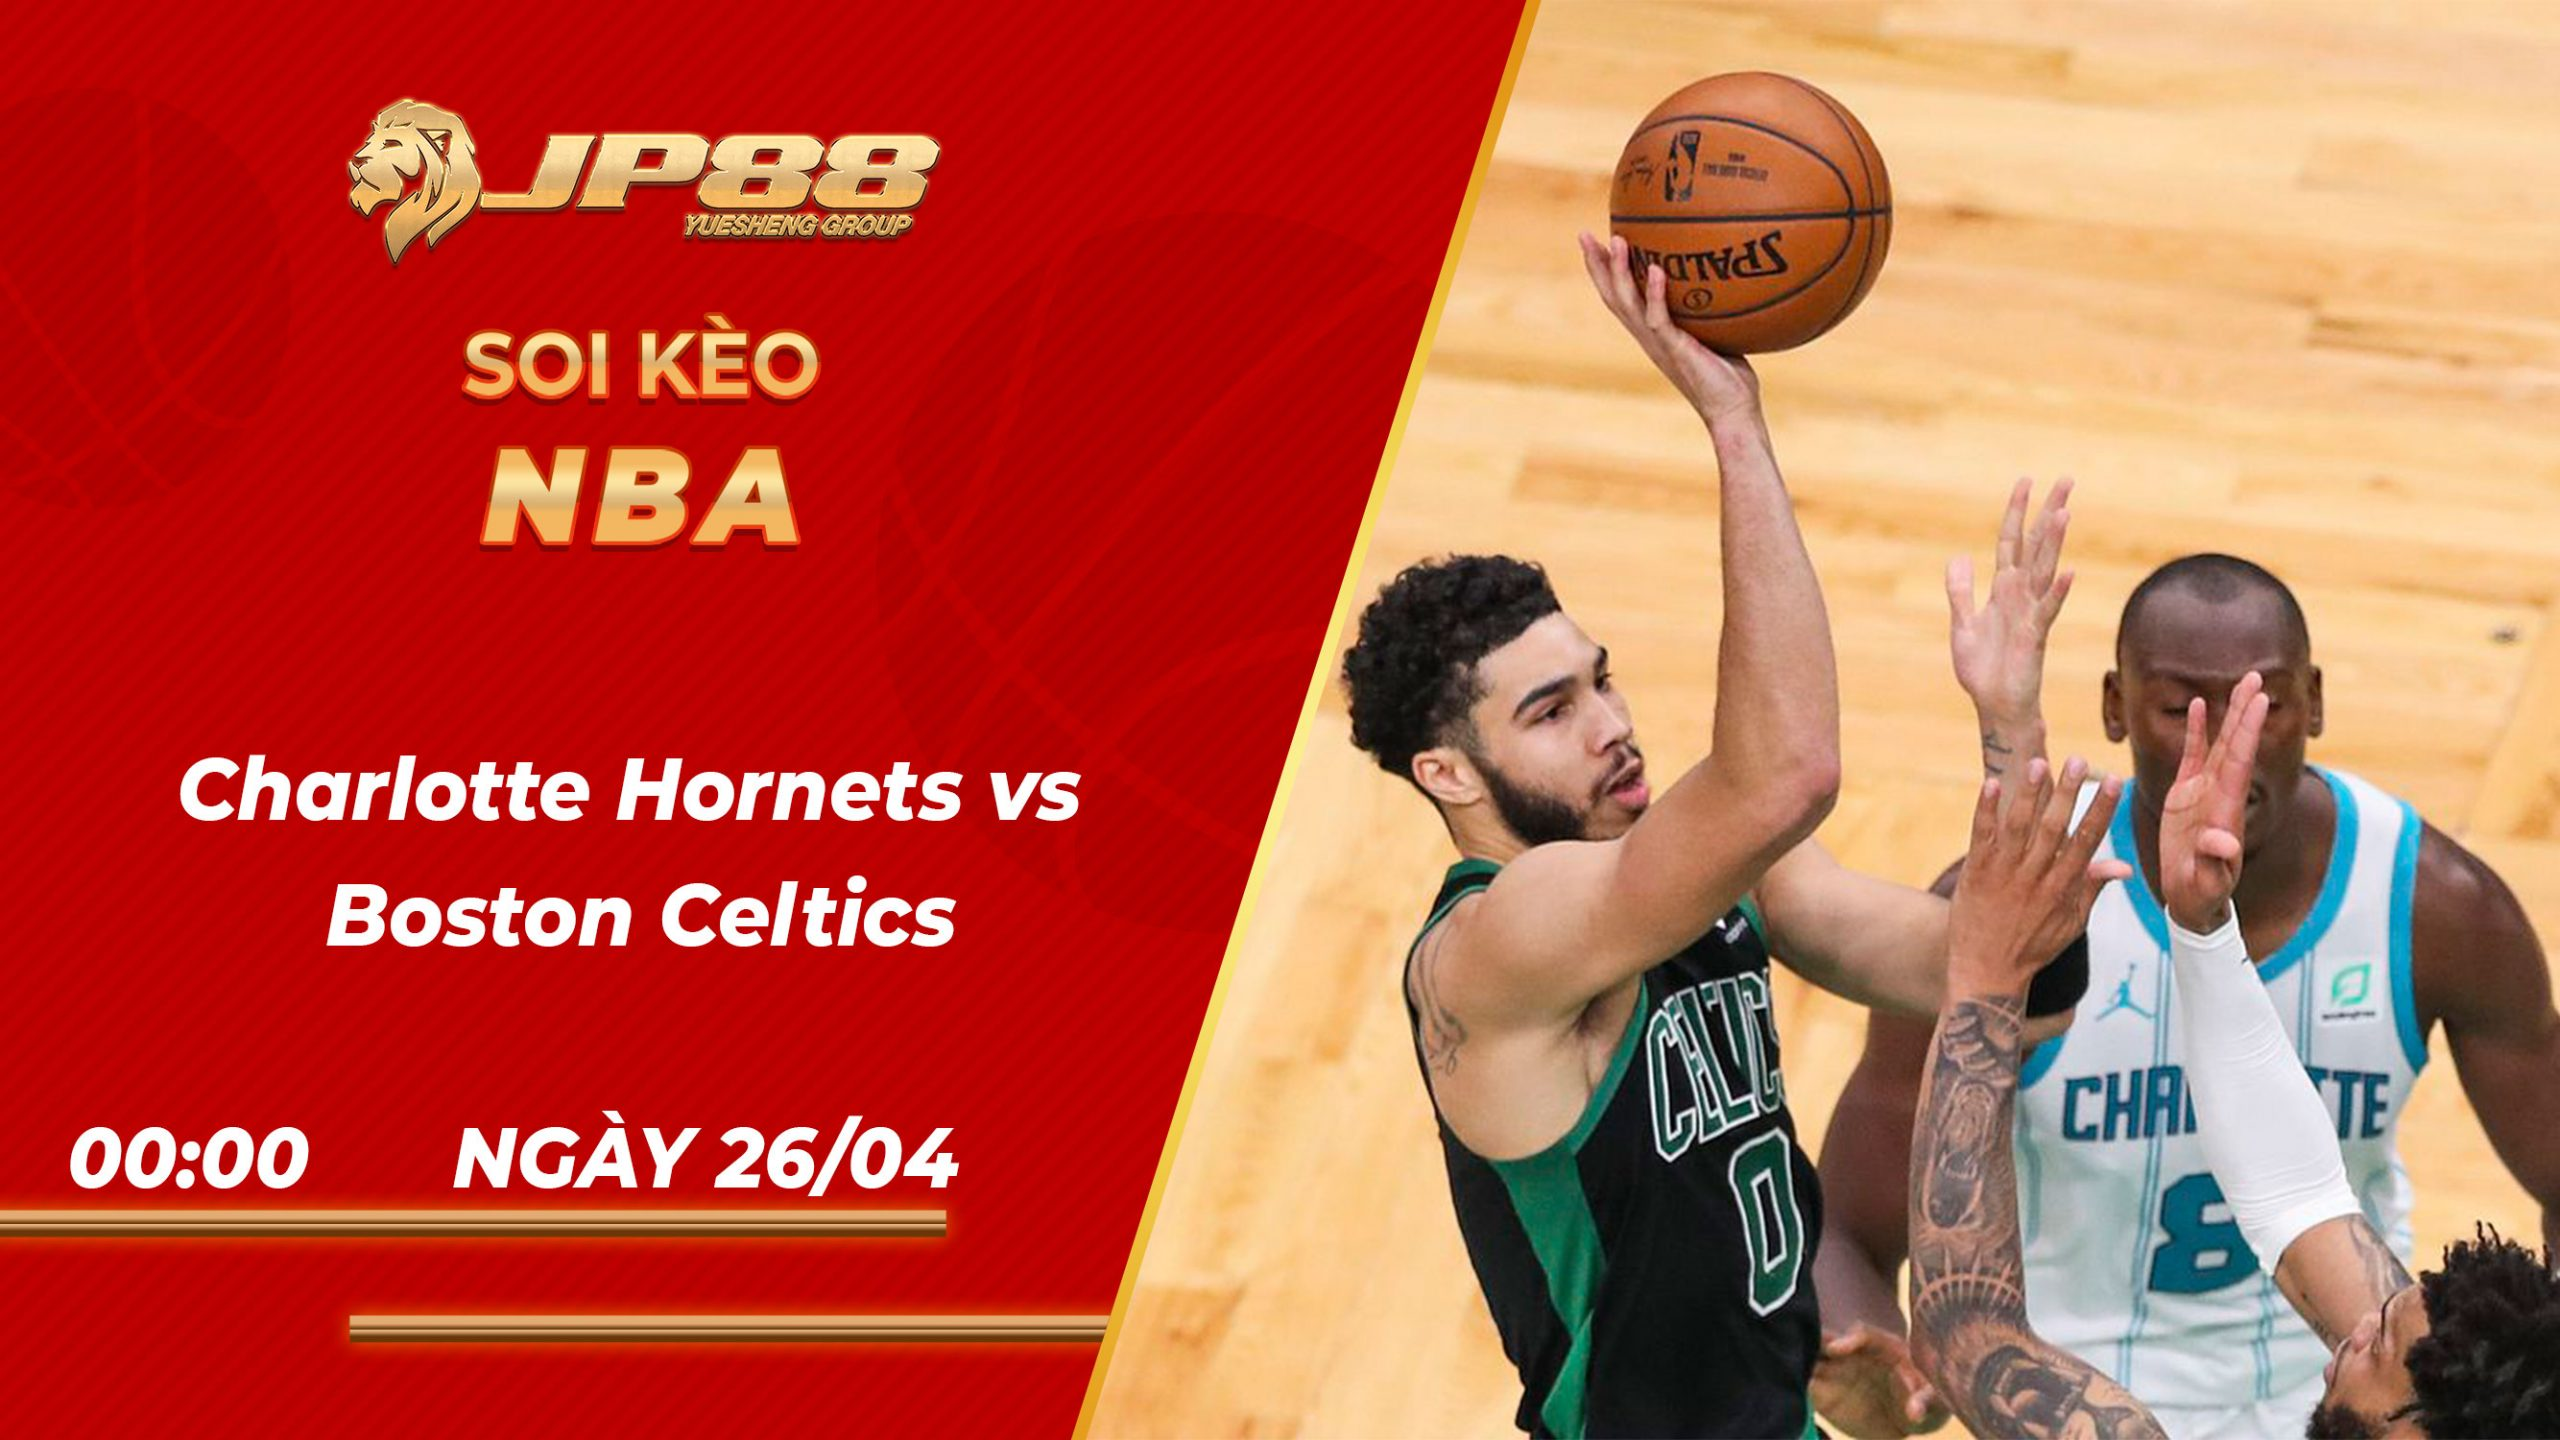 Soi kèo bóng rổ Charlotte Hornets vs Boston Celtics 00h00 26/04/2021 – NBA